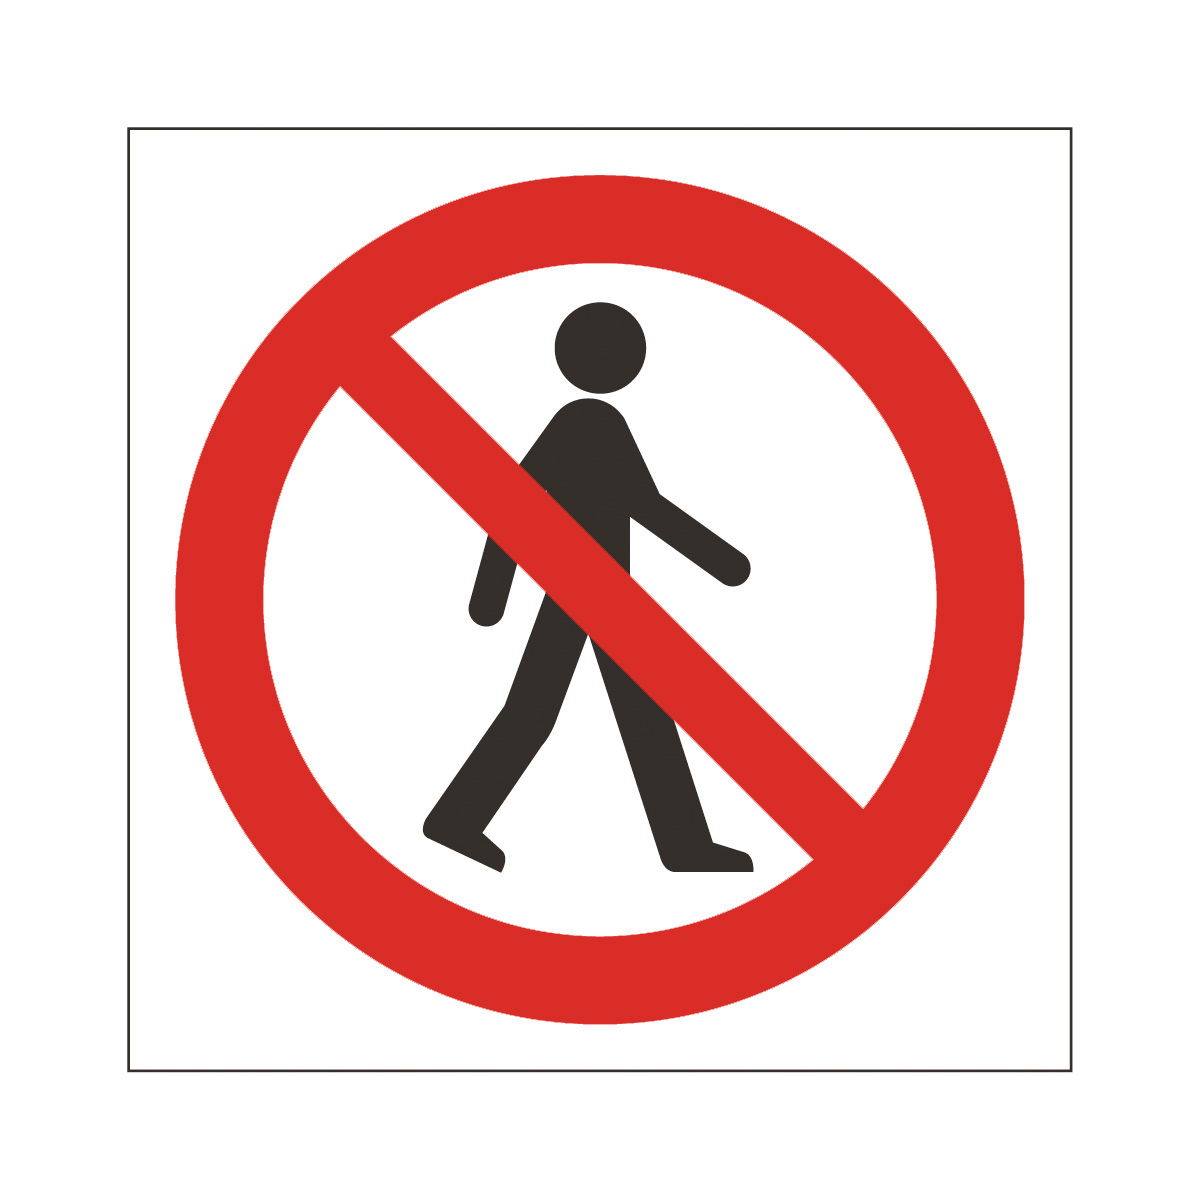 Safety Signs And Symbols Free Image